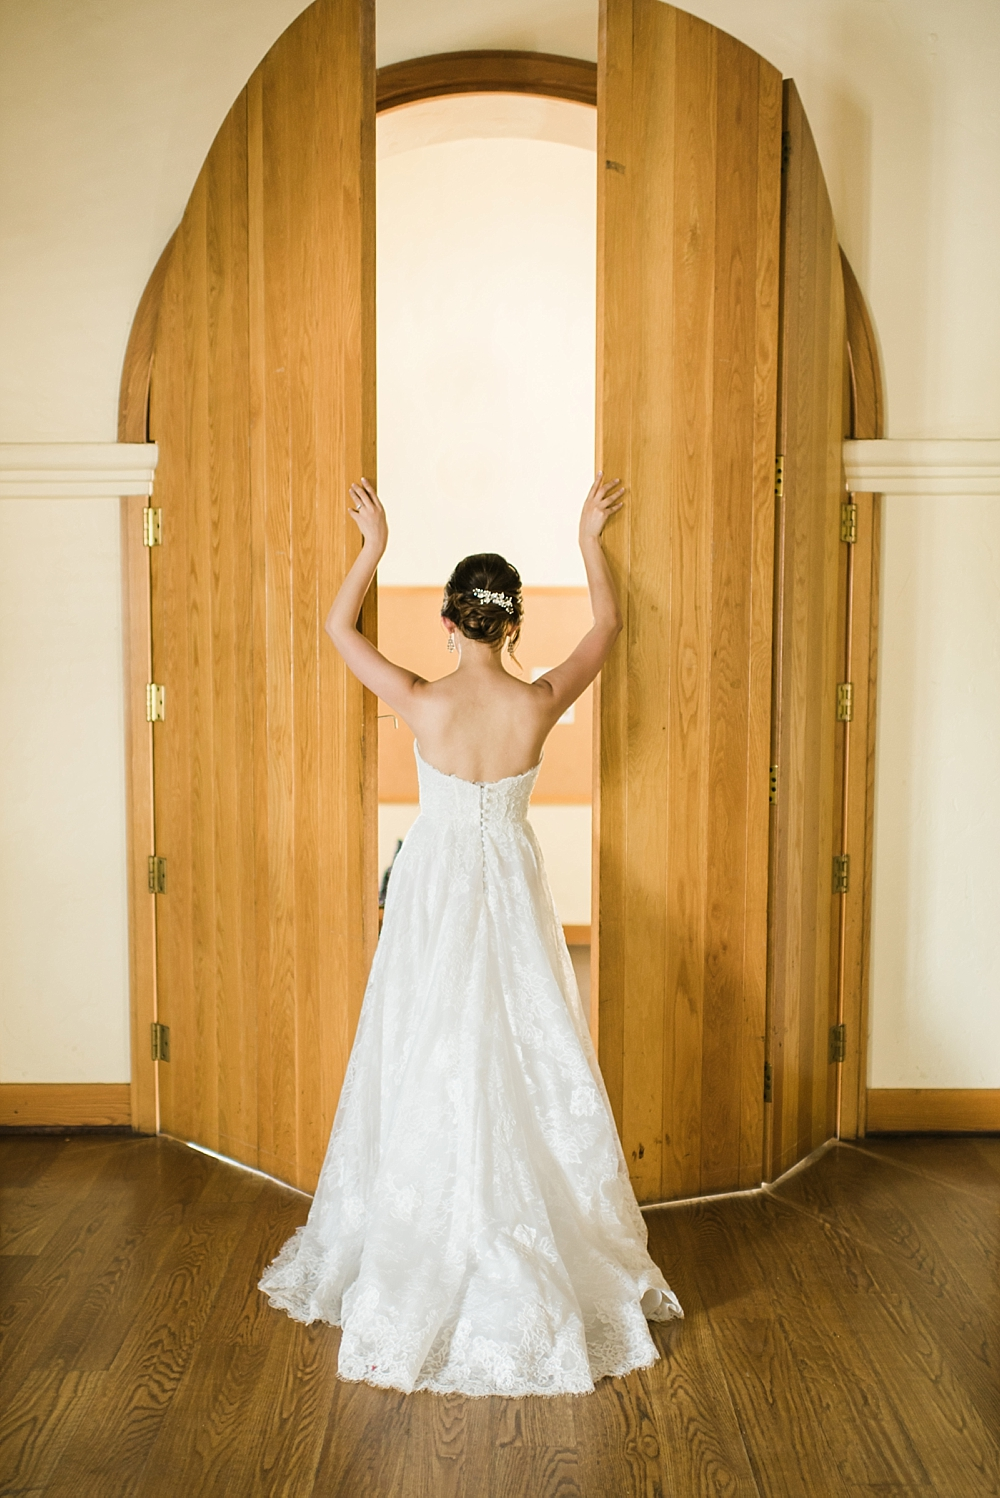 Grapevine-Arbor-San-Gabriel-wedding-photographer-Carissa-Woo-Photography-Laura-and-Eric_0006.jpg